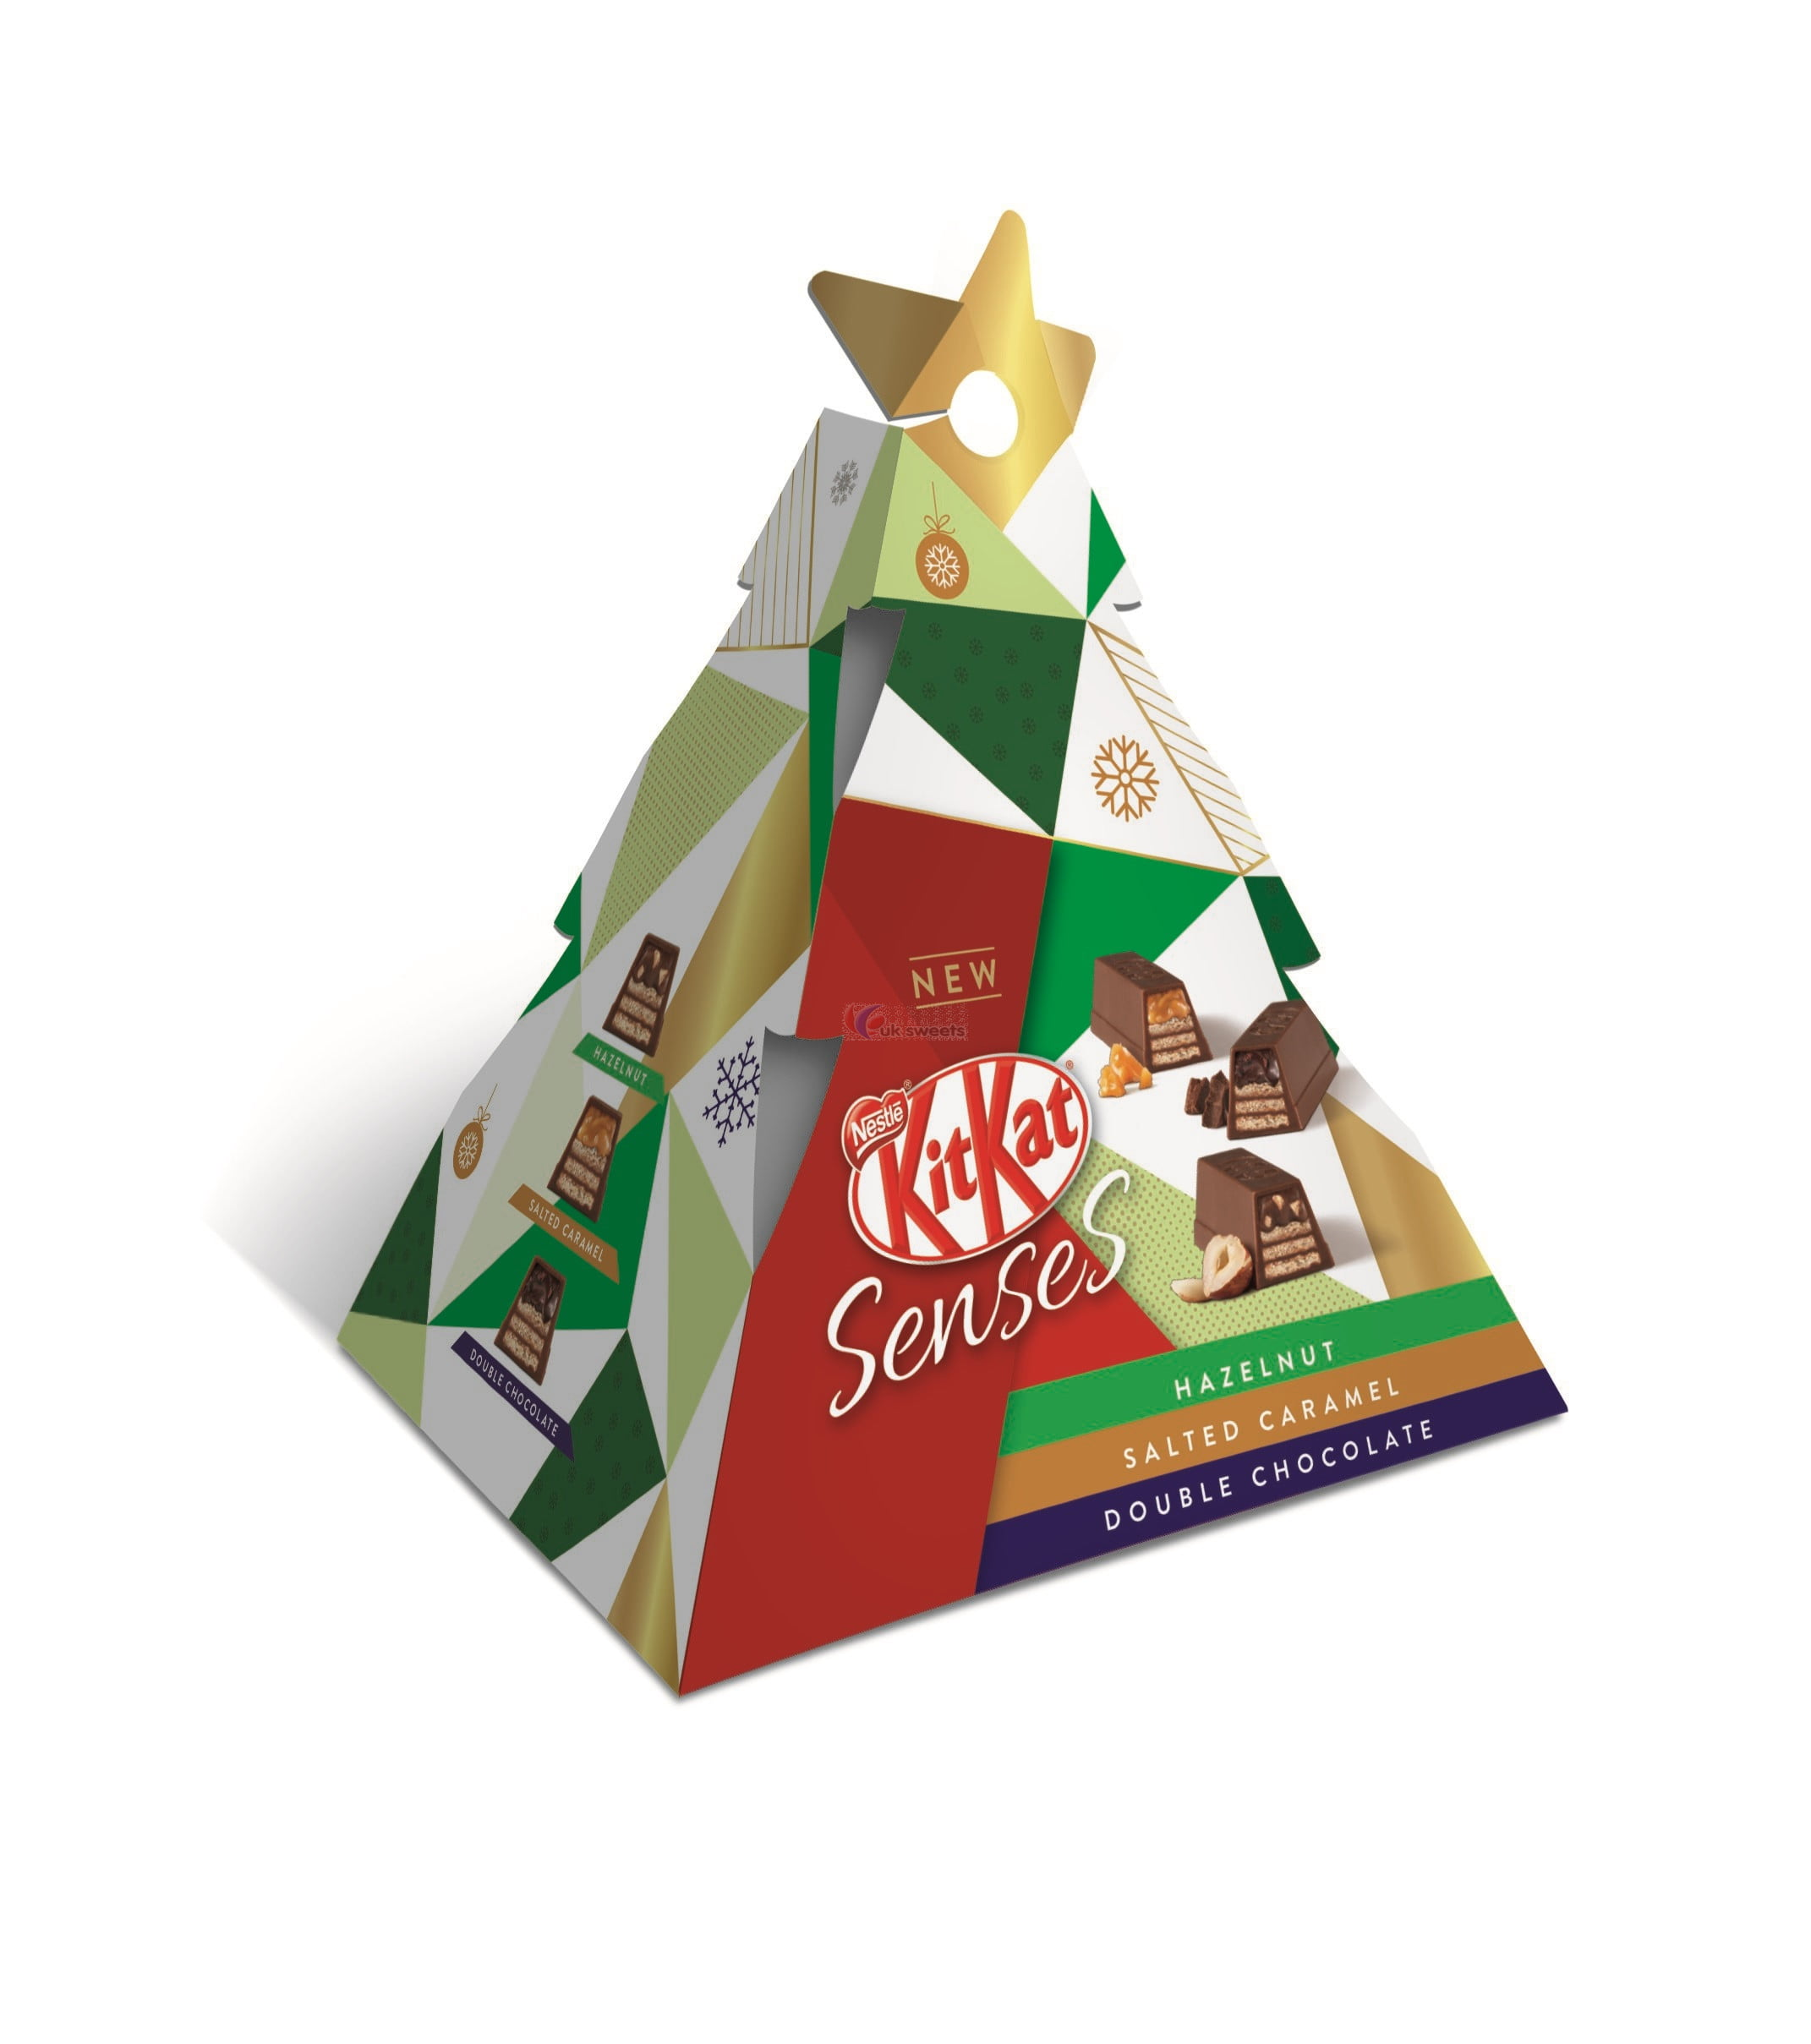 Nestle Kit Kat Senses Mini Christmas Tree | Brits R U.S.